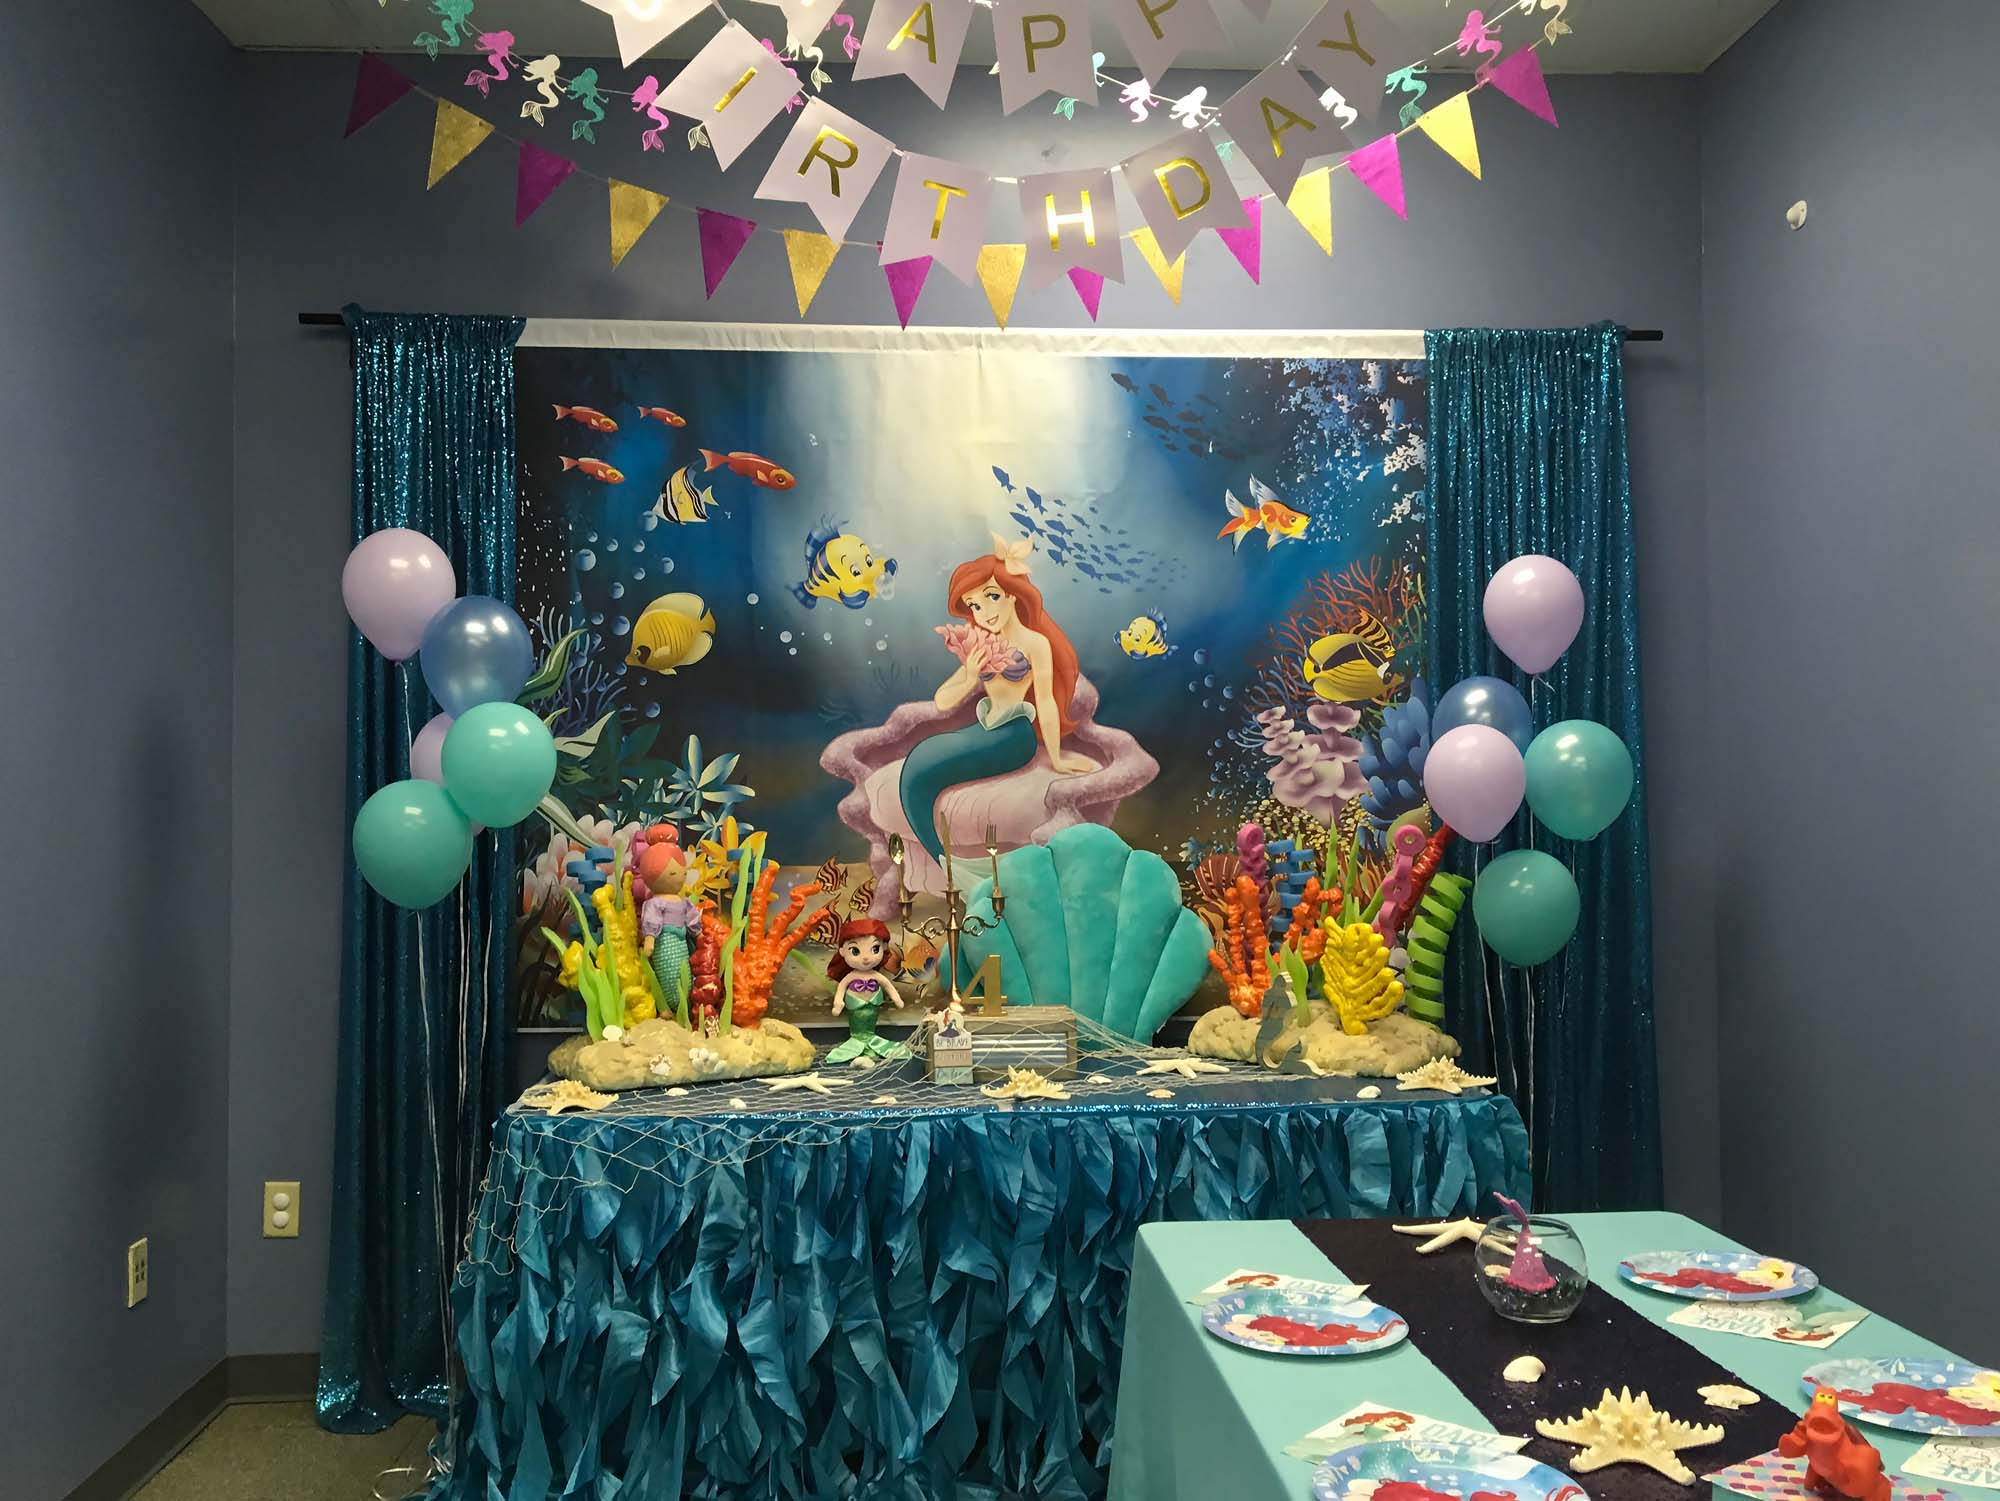 Mermaid Birthday Party For 4 Year Old Girl Held At Orlando